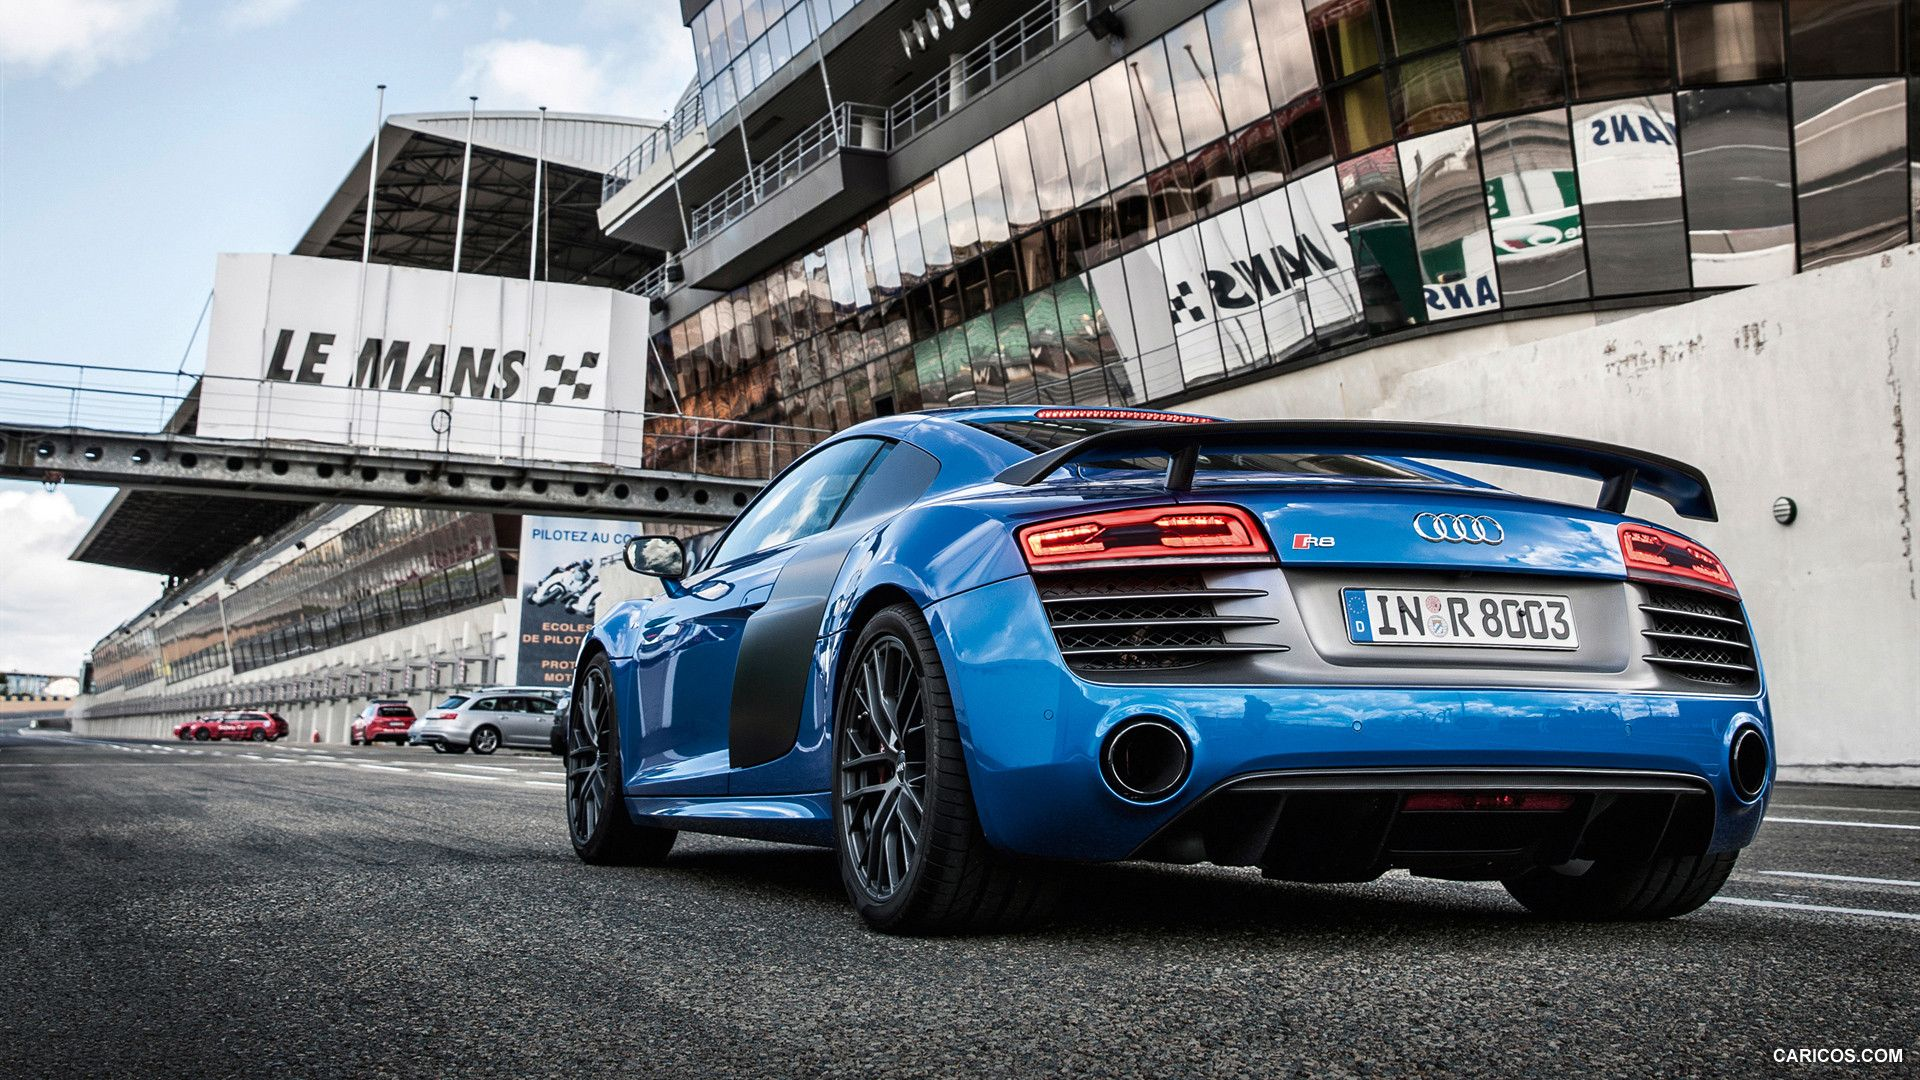 2015 Audi R8 LMX Blue CarsAudi A4GreenWallpapersHtml